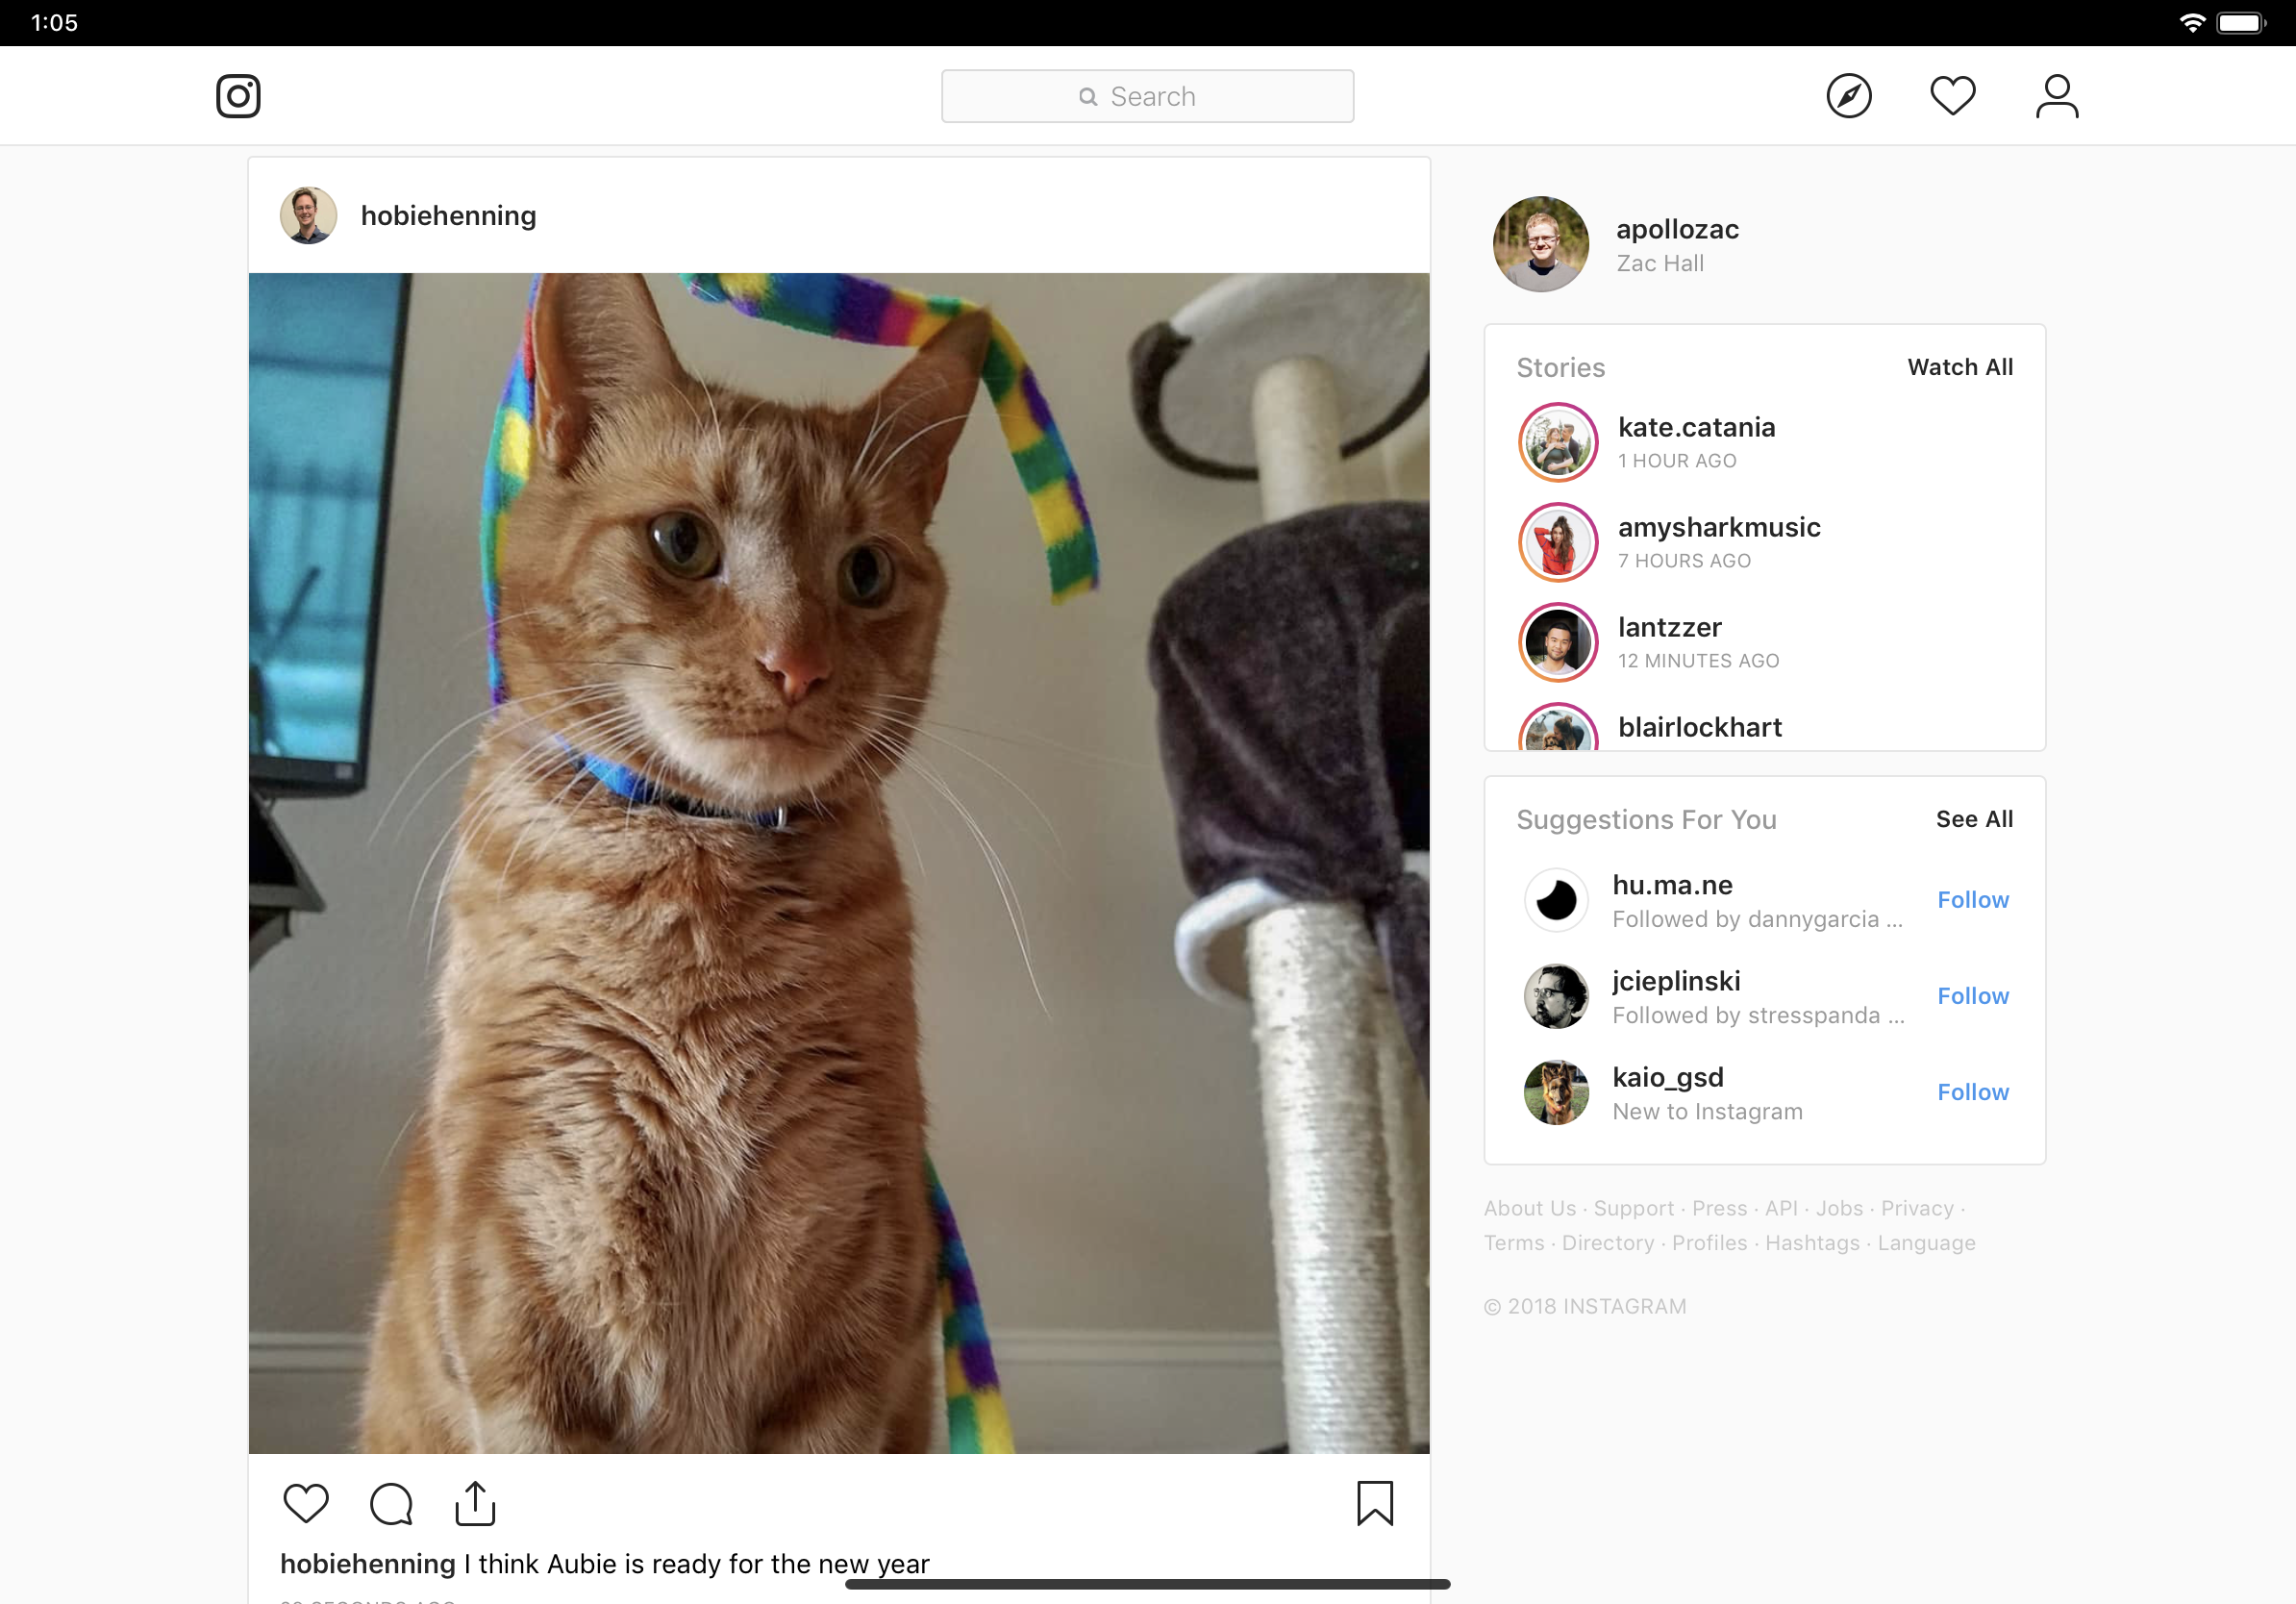 Comment: It's 2019, Instagram should make an iPad app